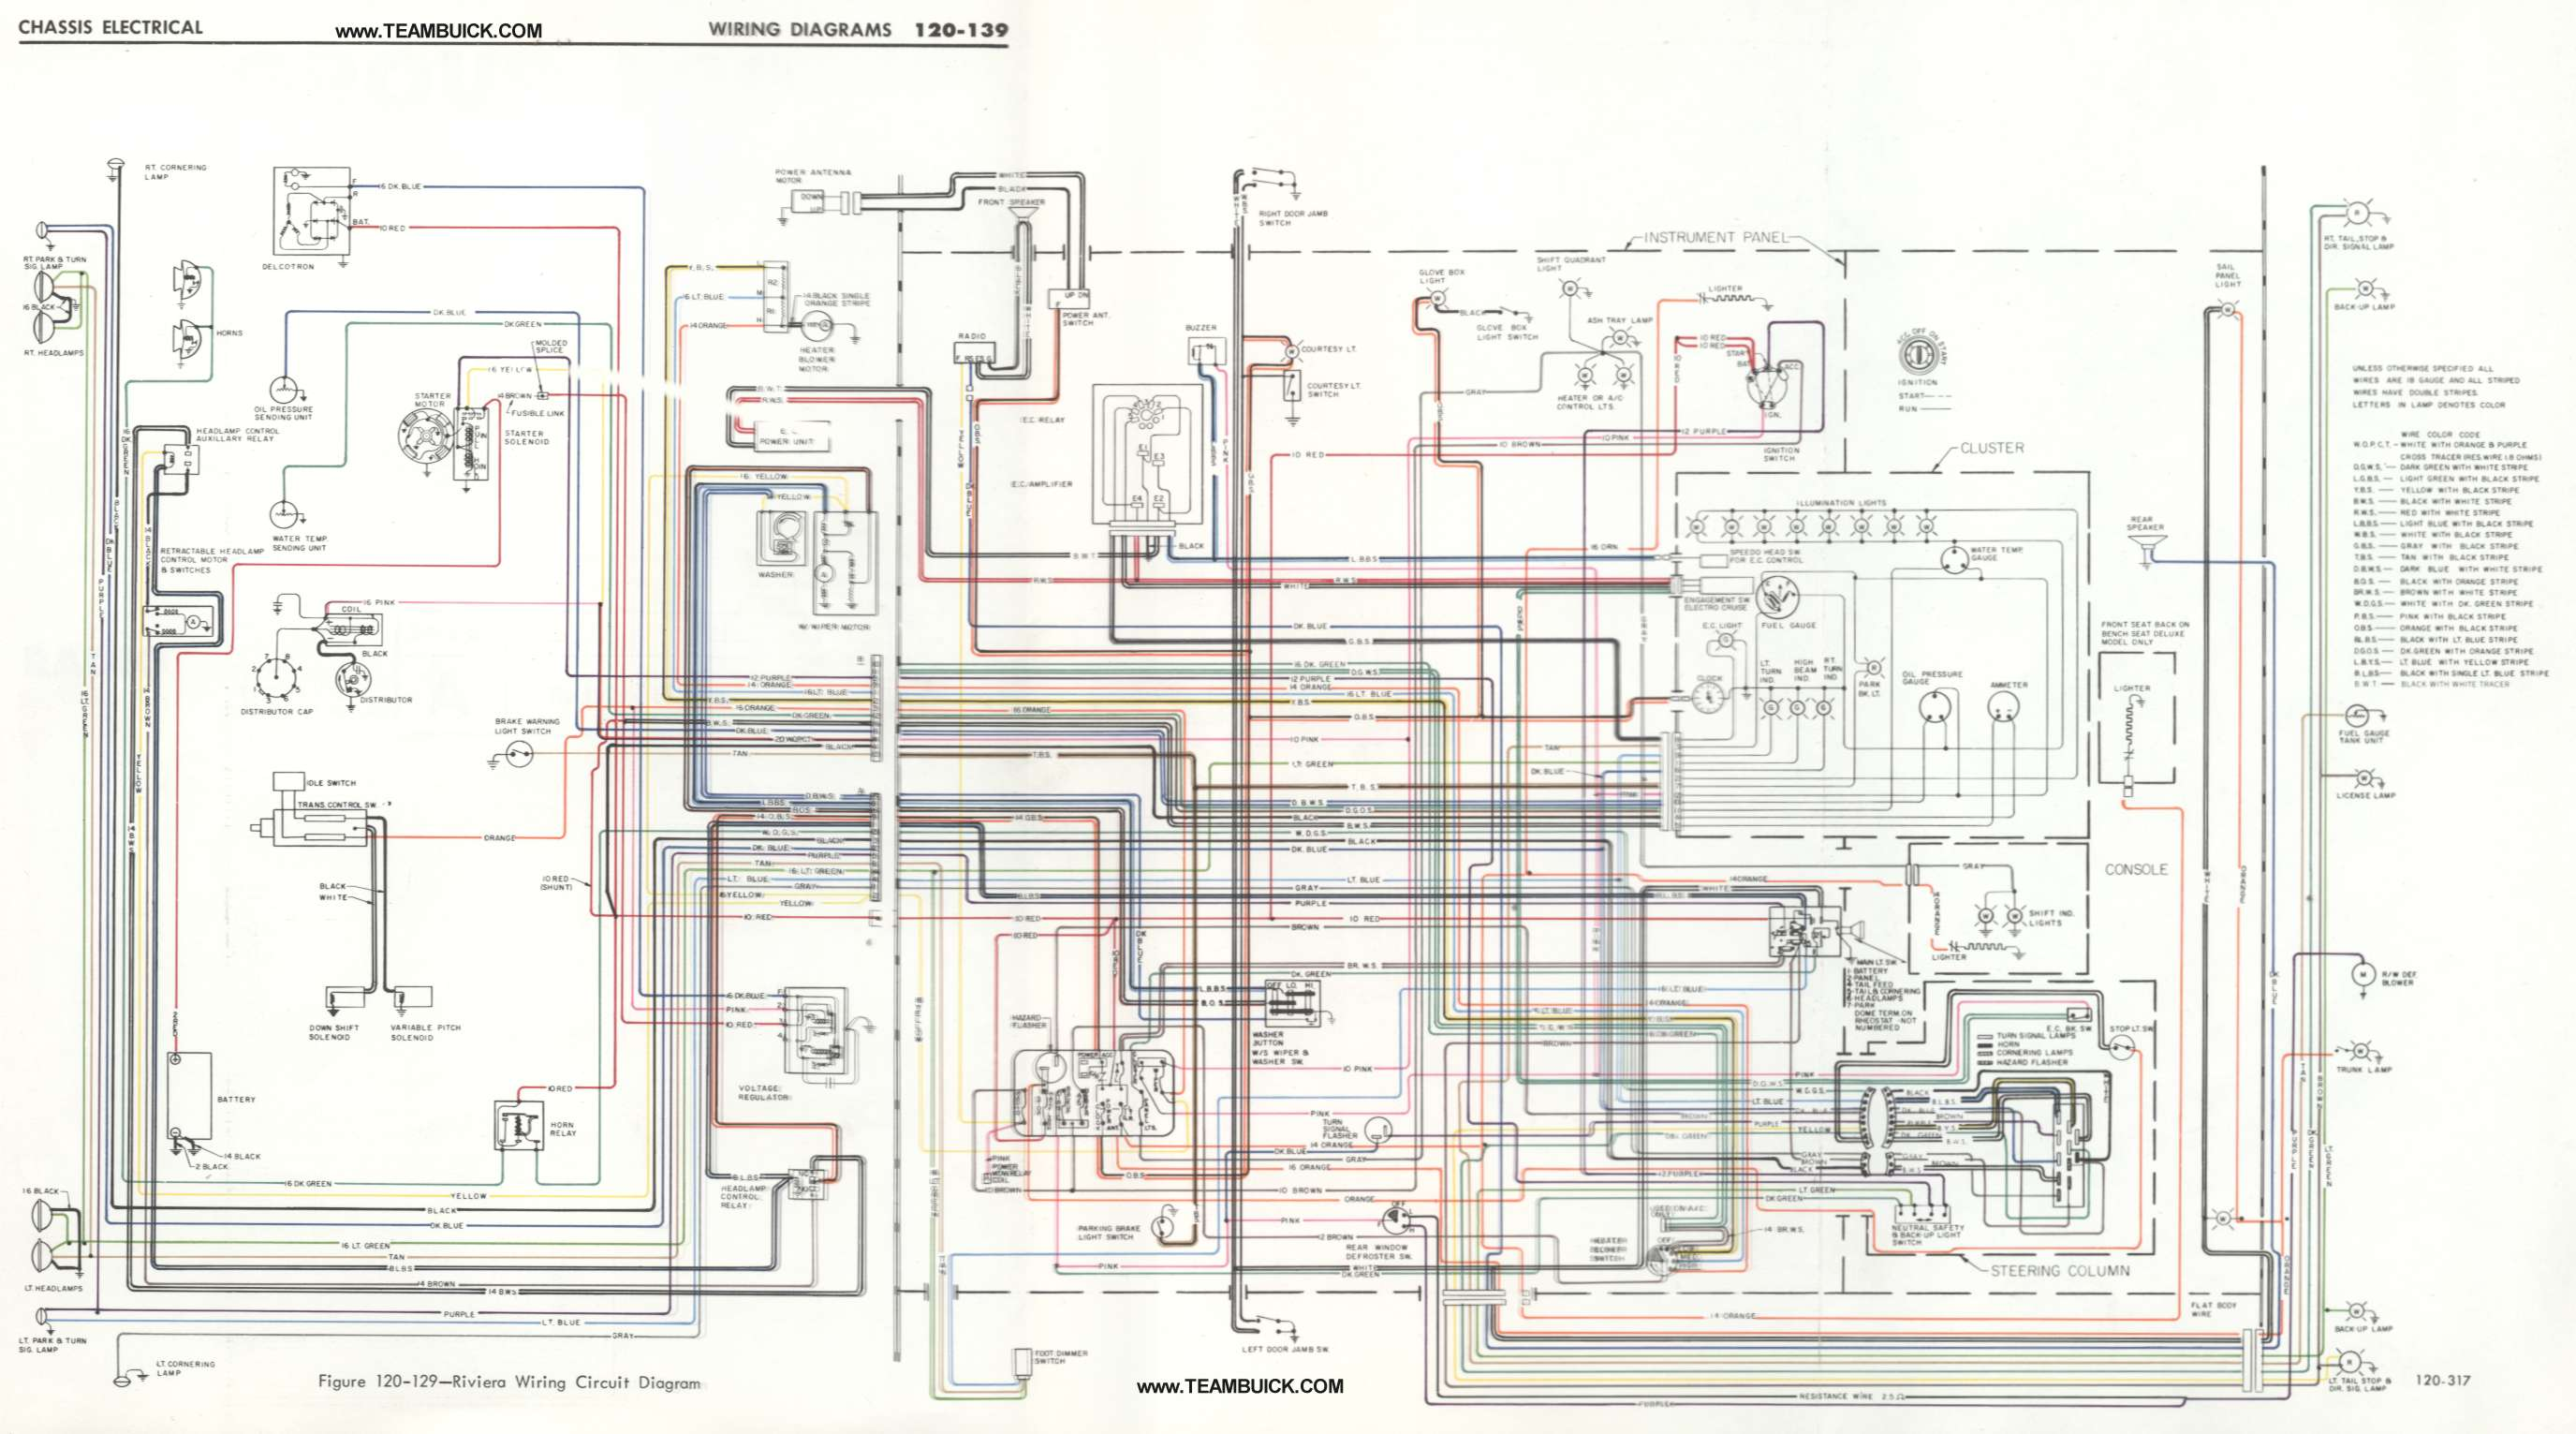 1967 Buick Skylark Wiring Diagram Wiring Diagram \u2022 1954 Dodge Wiring  Diagram 1966 Dodge D 300 Wiring Diagram